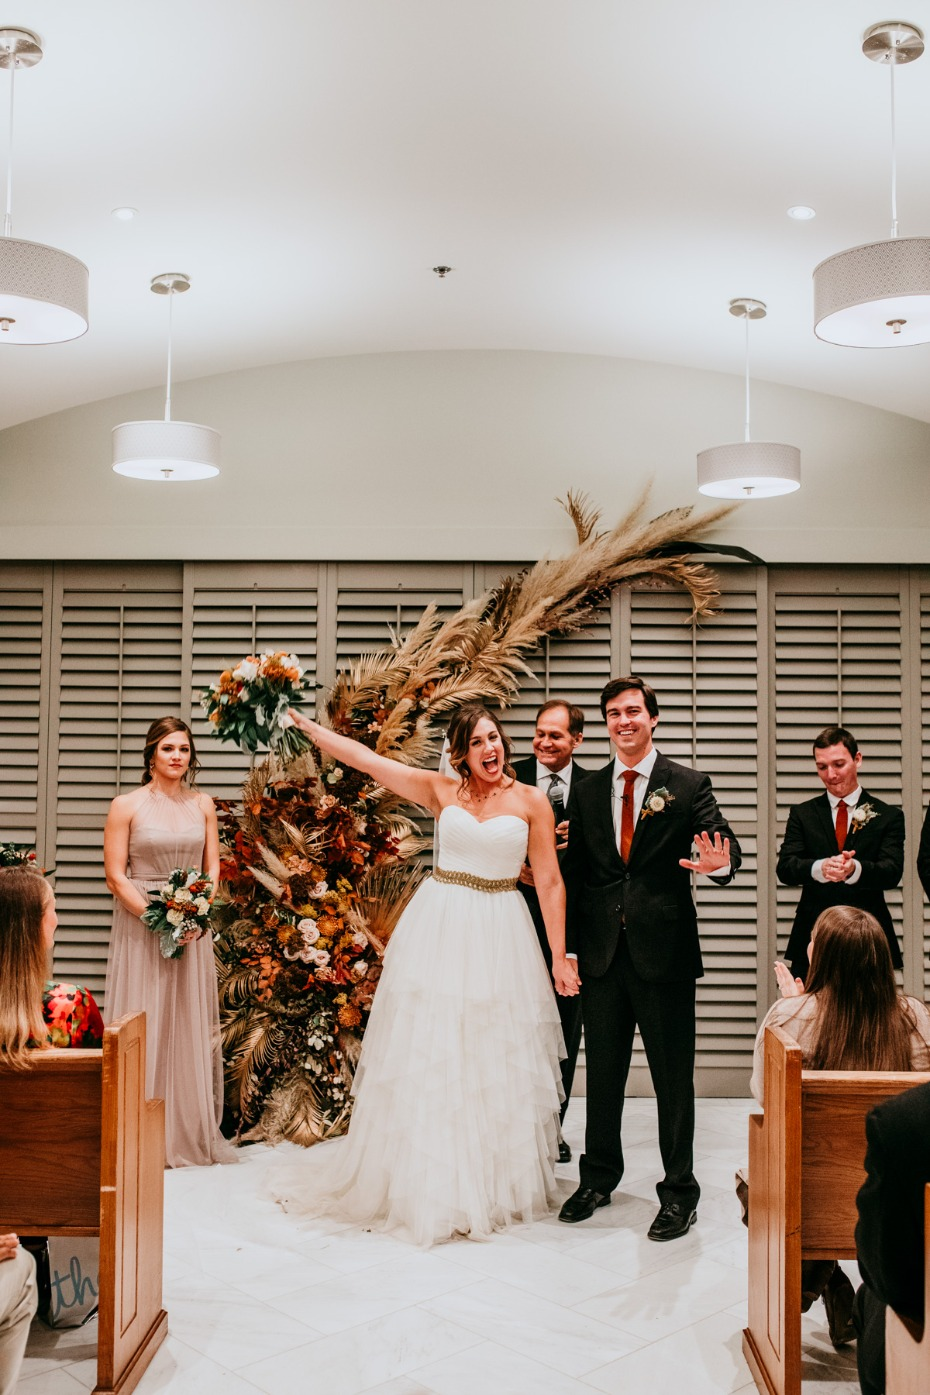 Autumn-inspired ceremony decor